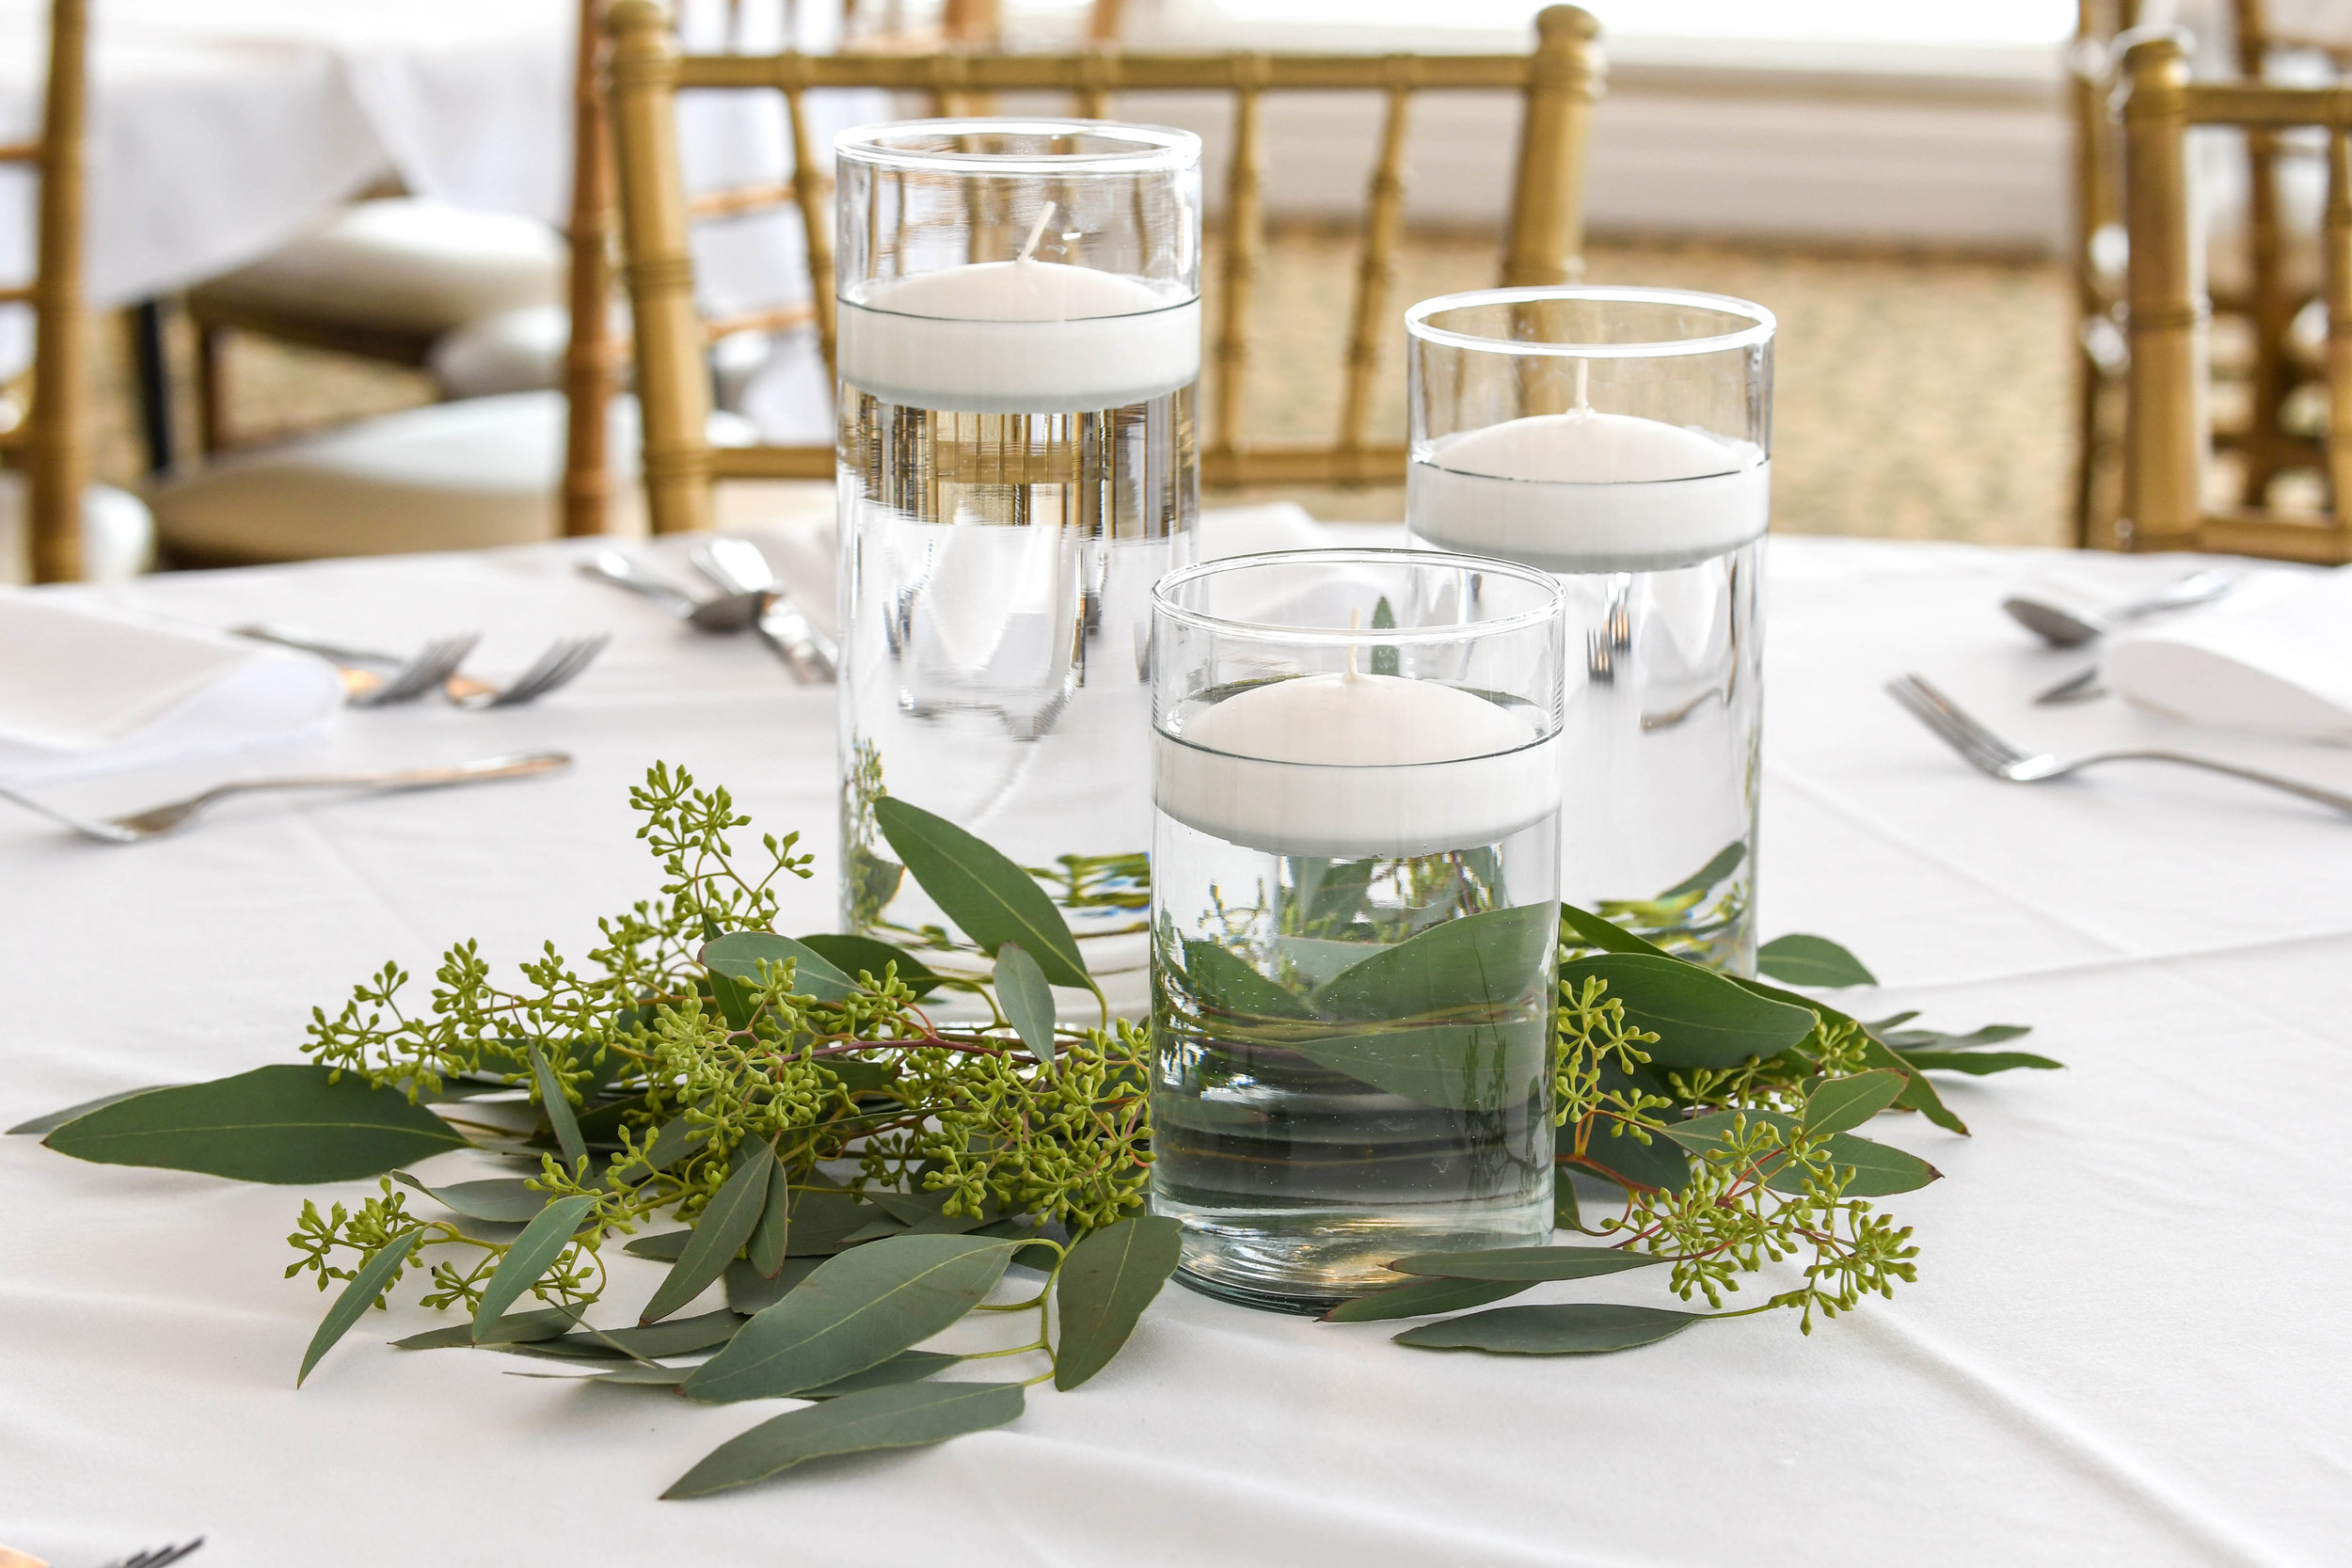 Floating Candles with Foliage